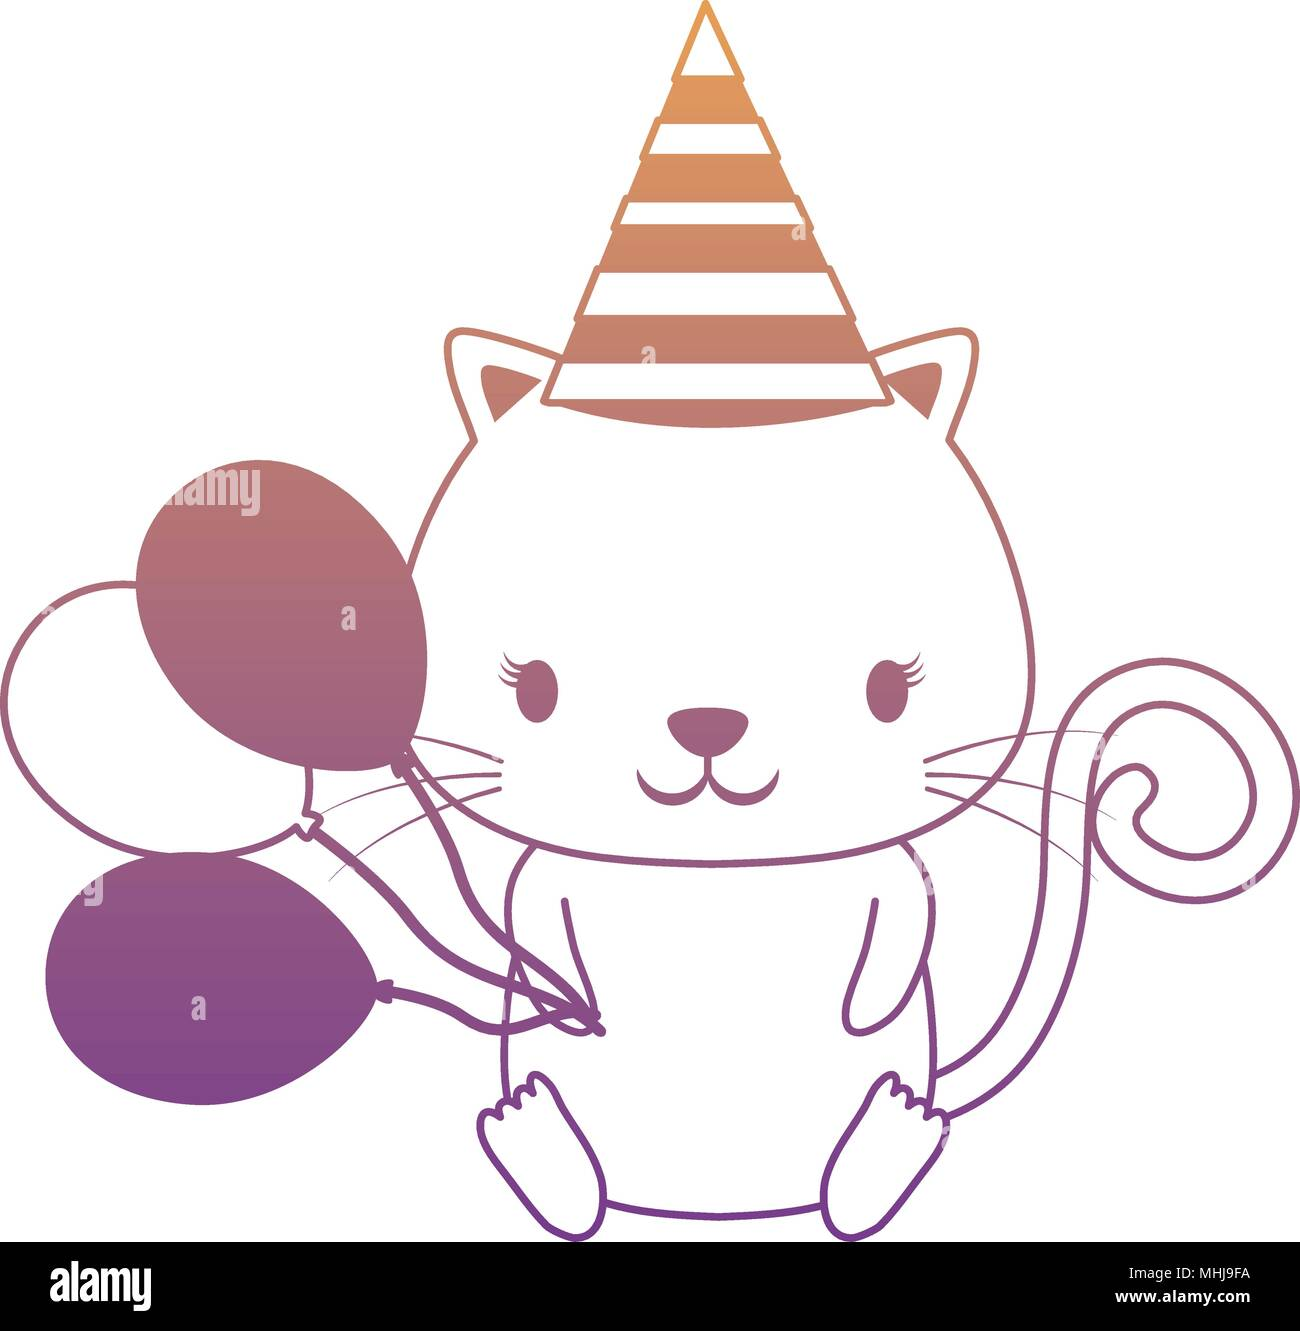 Happy Birthday Design With Cute Cat Hat And Balloons Over White Background Colorful Vector Illustration